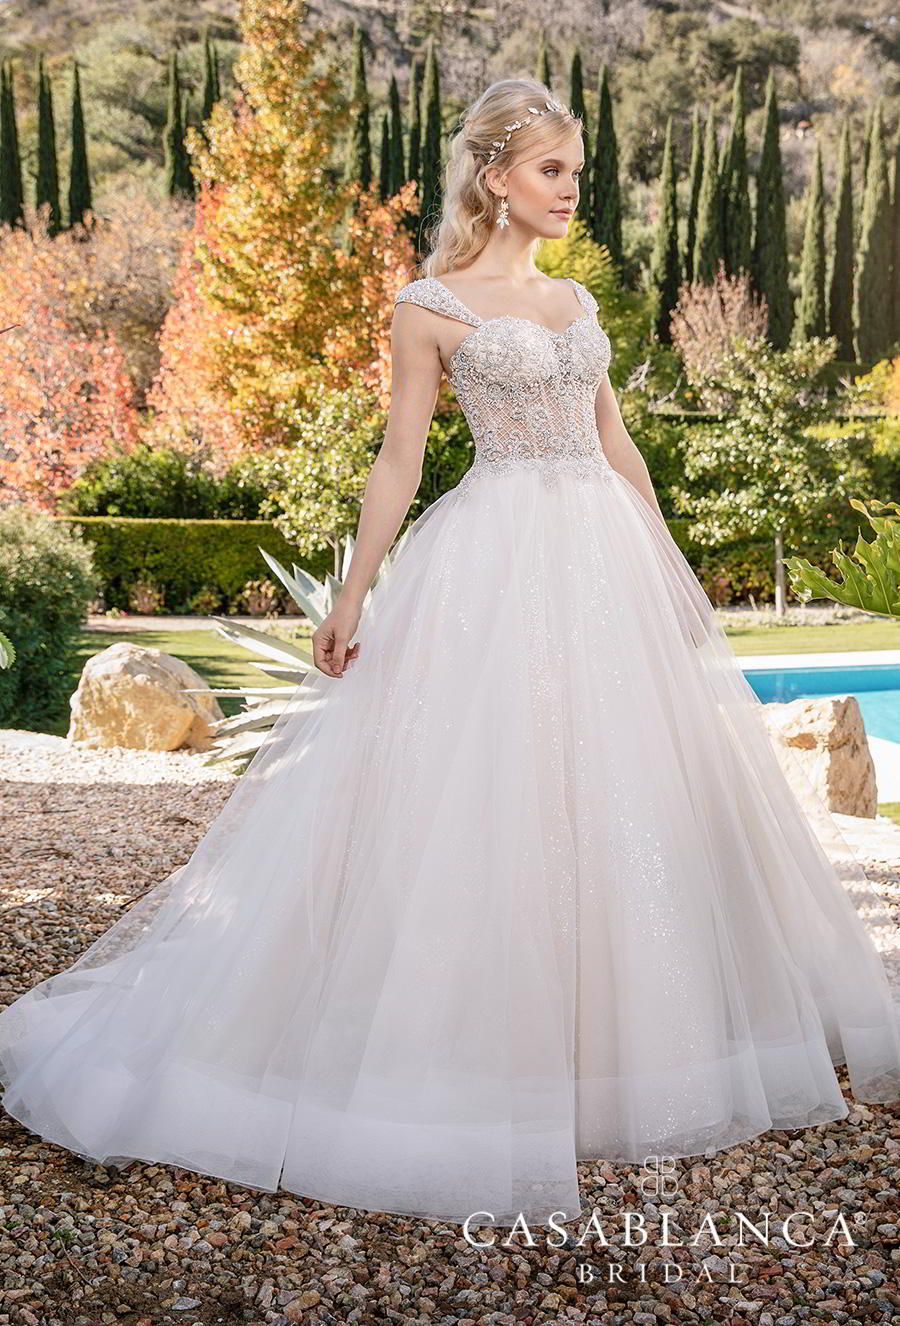 casablanca fall 2019 bridal sleeveless tapered strap sweetheart neckline heavily embellished bodice tulle skirt princess ball gown a  line wedding dress mid back chapel train (2374) mv